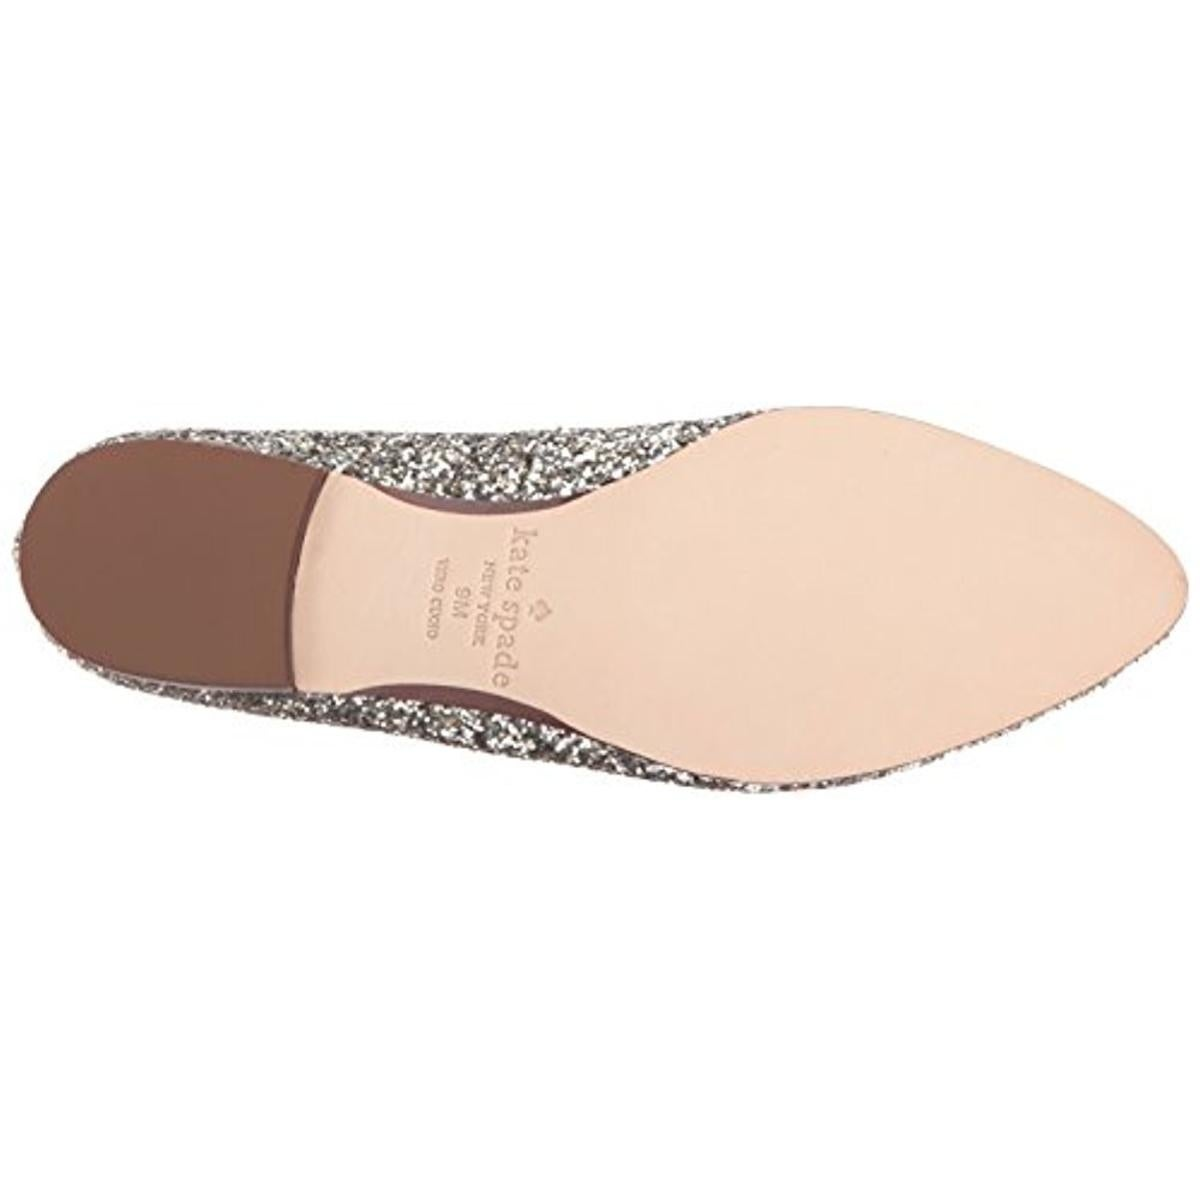 39a1716716fd Shop Kate Spade Womens Calliope Loafers Glitter Almond Toe - Free Shipping  Today - Overstock - 21009570